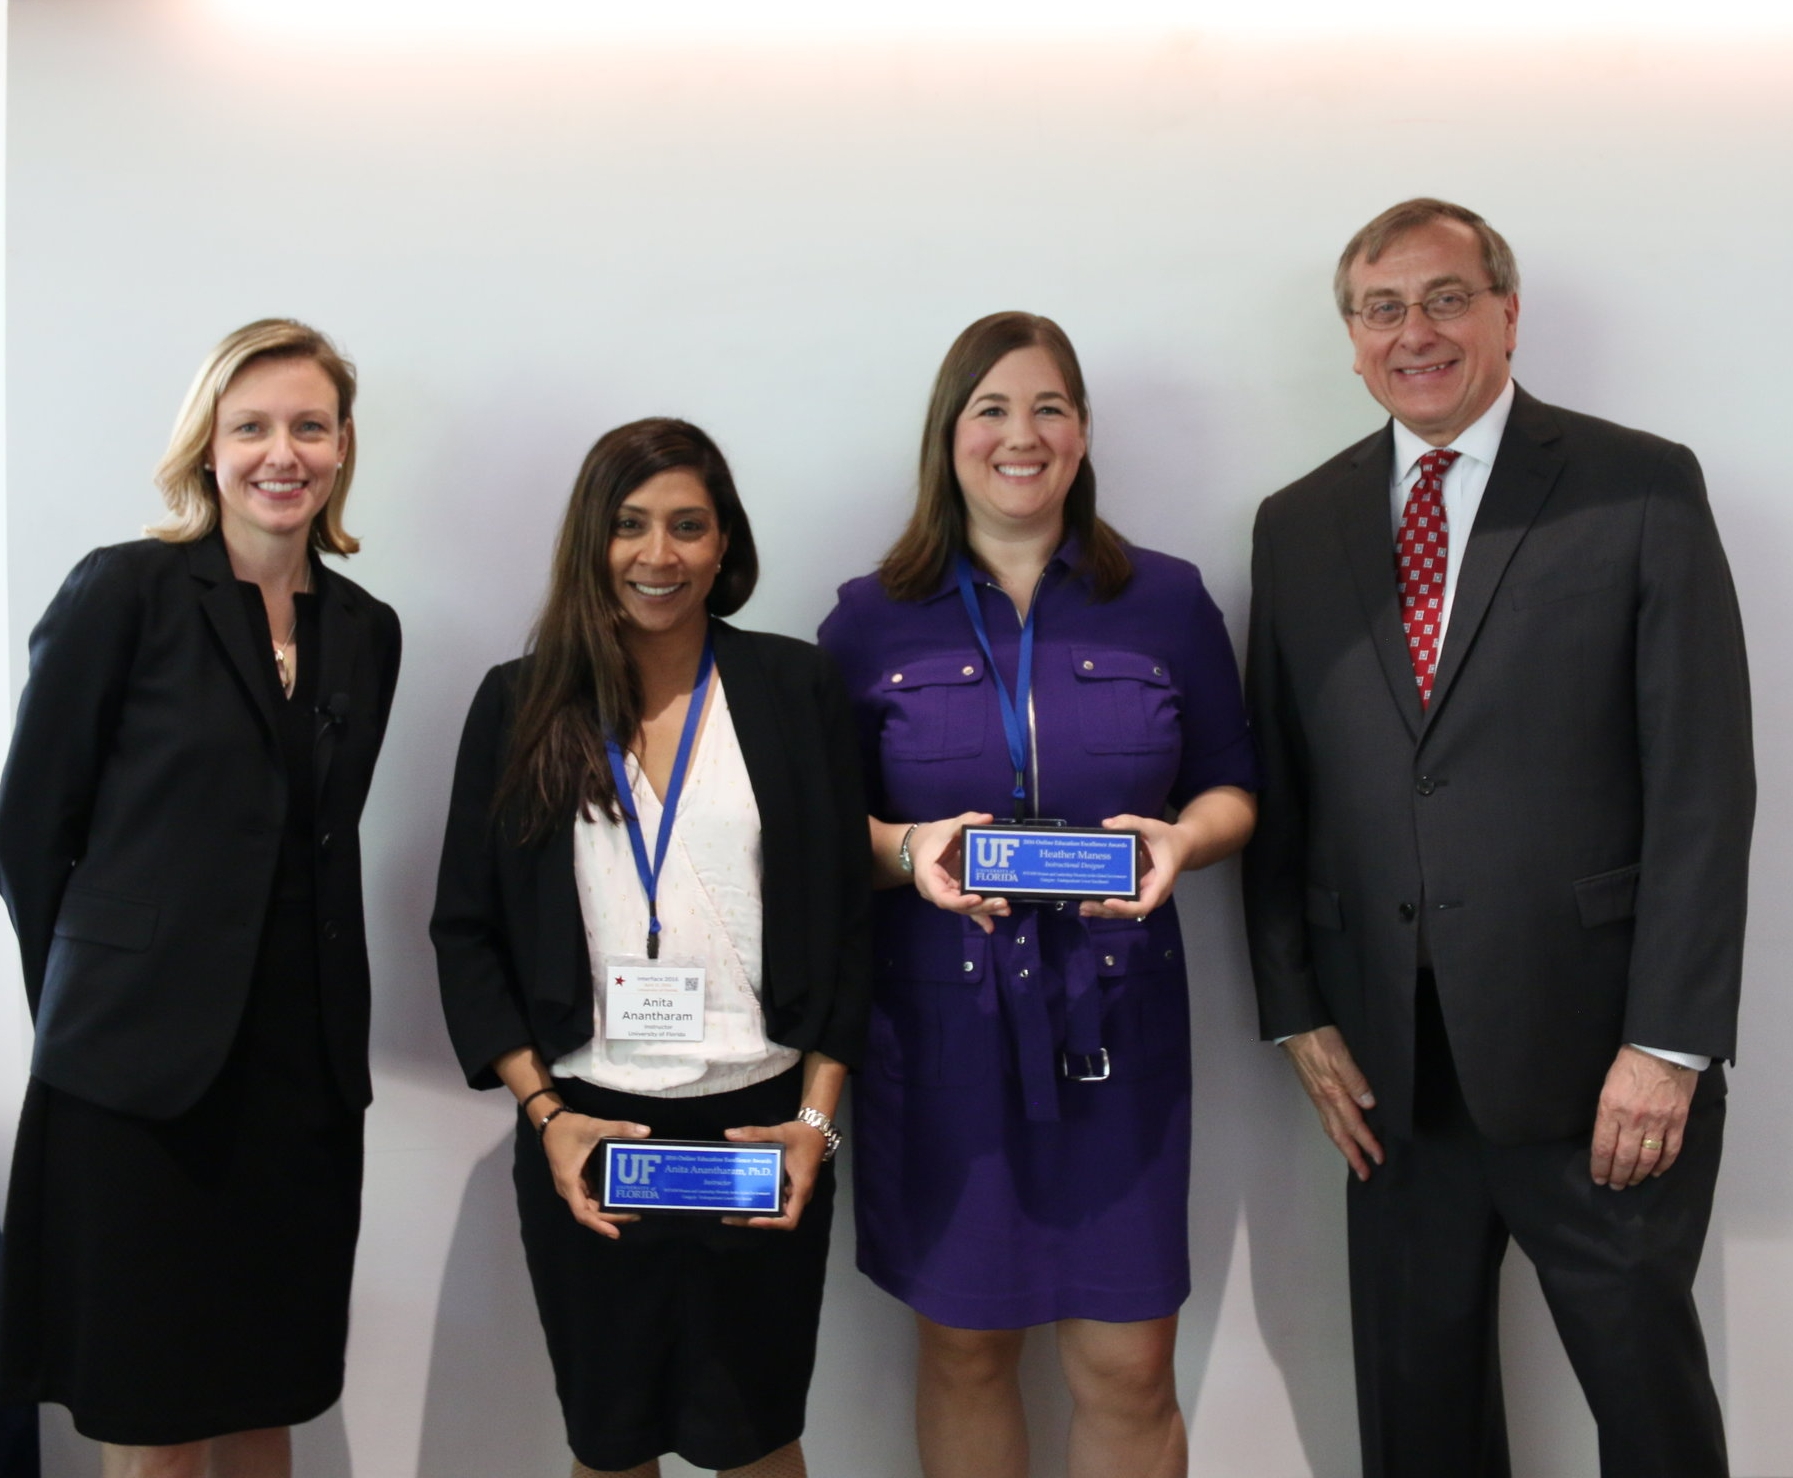 Online Excellence in Teaching Award Ceremony, 2016. From left: Associate Provost Evie Cummings, Dr. Anita Anantharam, Course Instructional Designer Dr. Heather T. Daniel Maness, and UF President Dr. W. Kent Fuchs